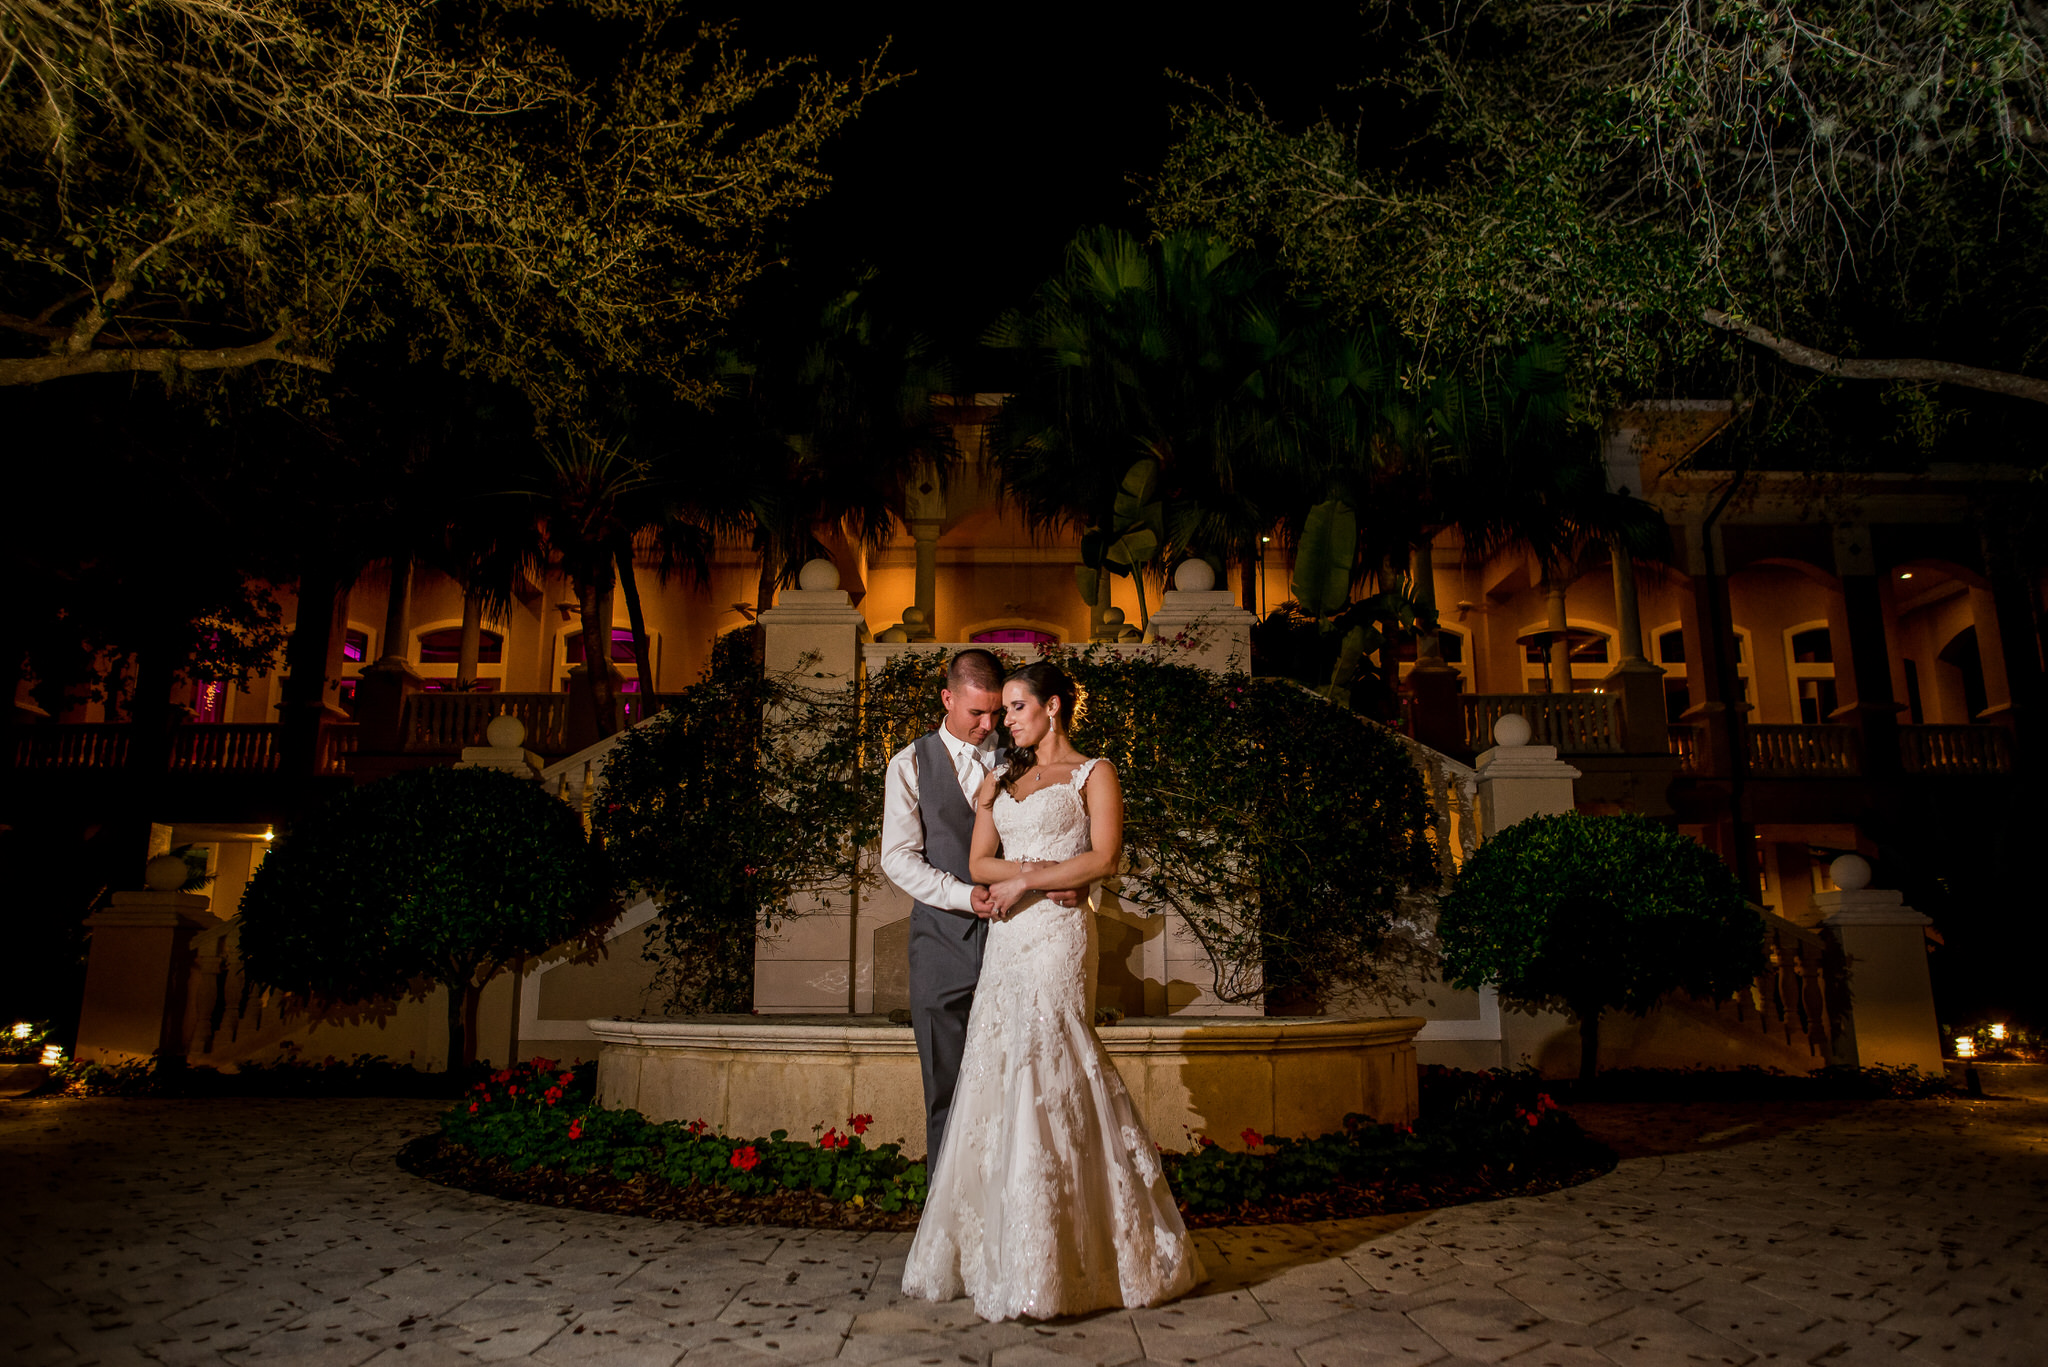 Night Portrait of Bride and Groom at the Club at the Strand in Naples, Florida